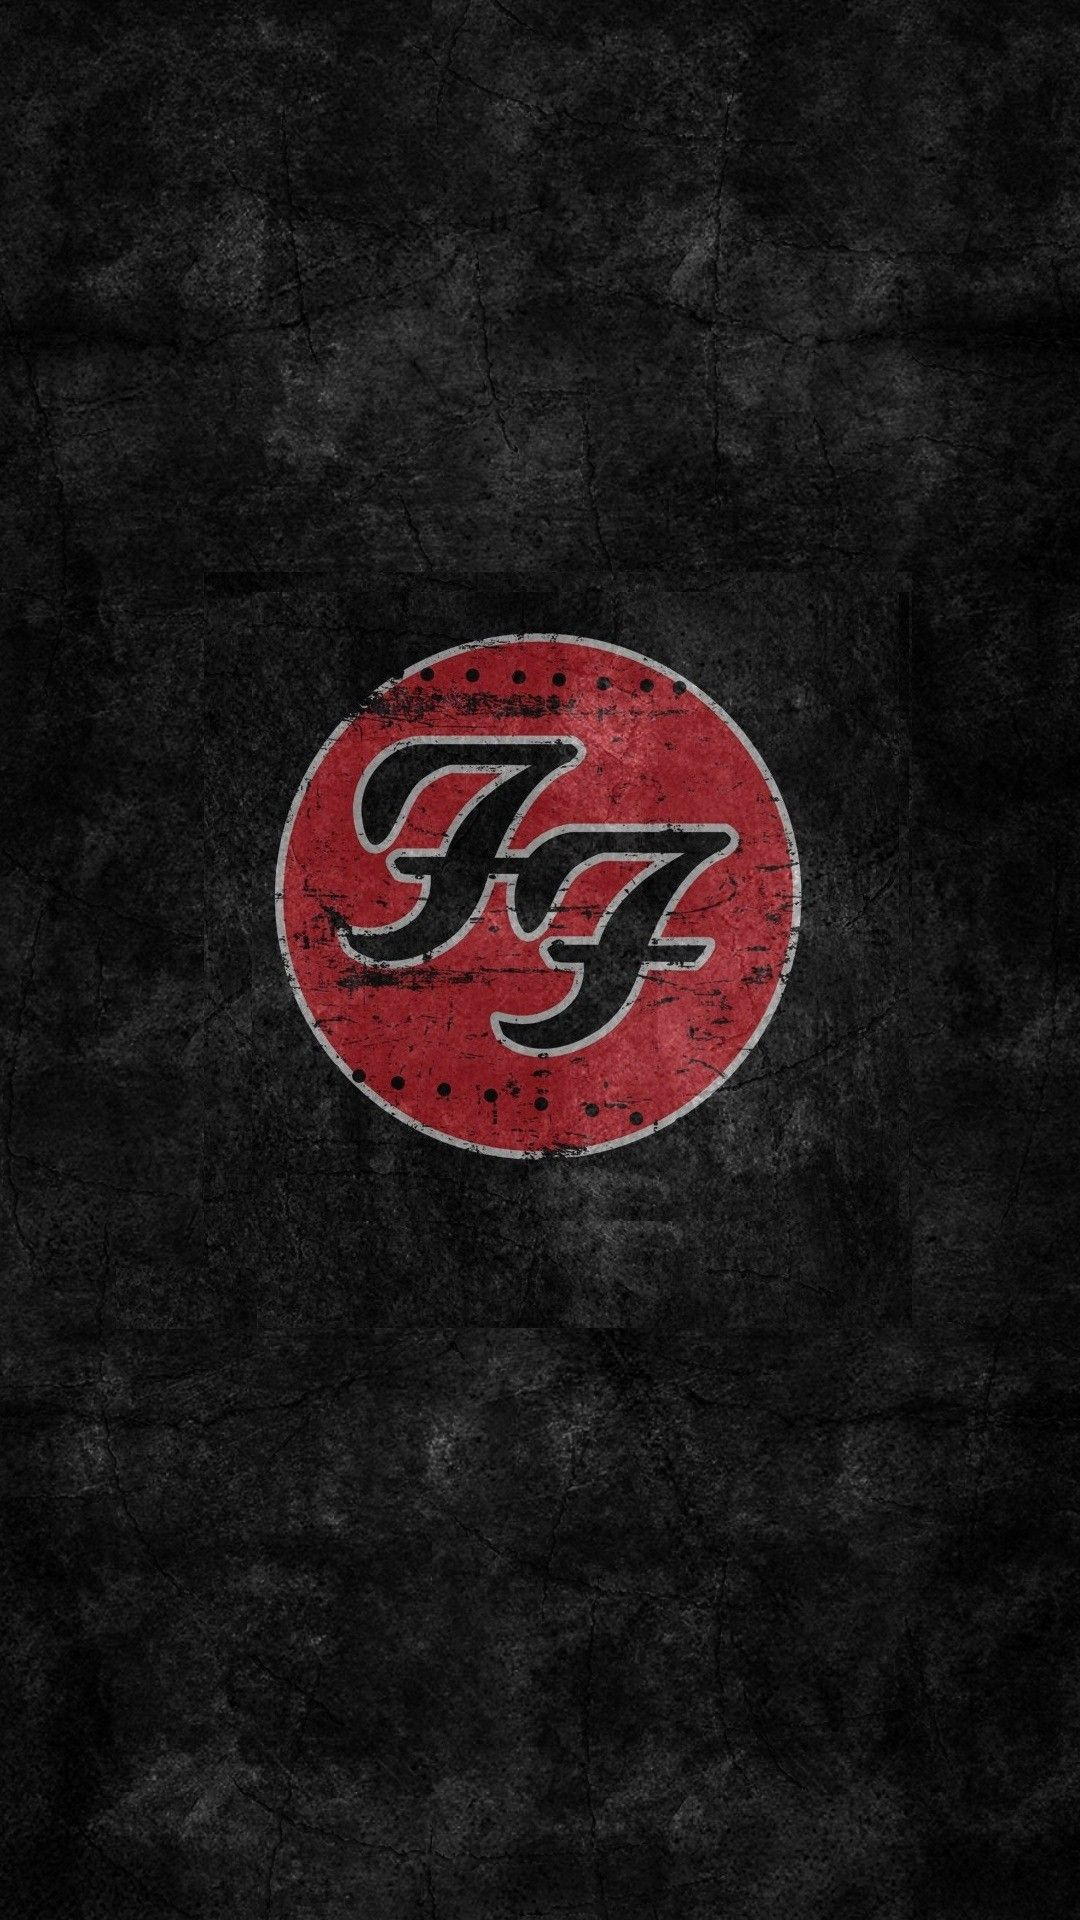 Hd Wallpaper Foo Fighters Logo 2018 Iphone Wallpapers